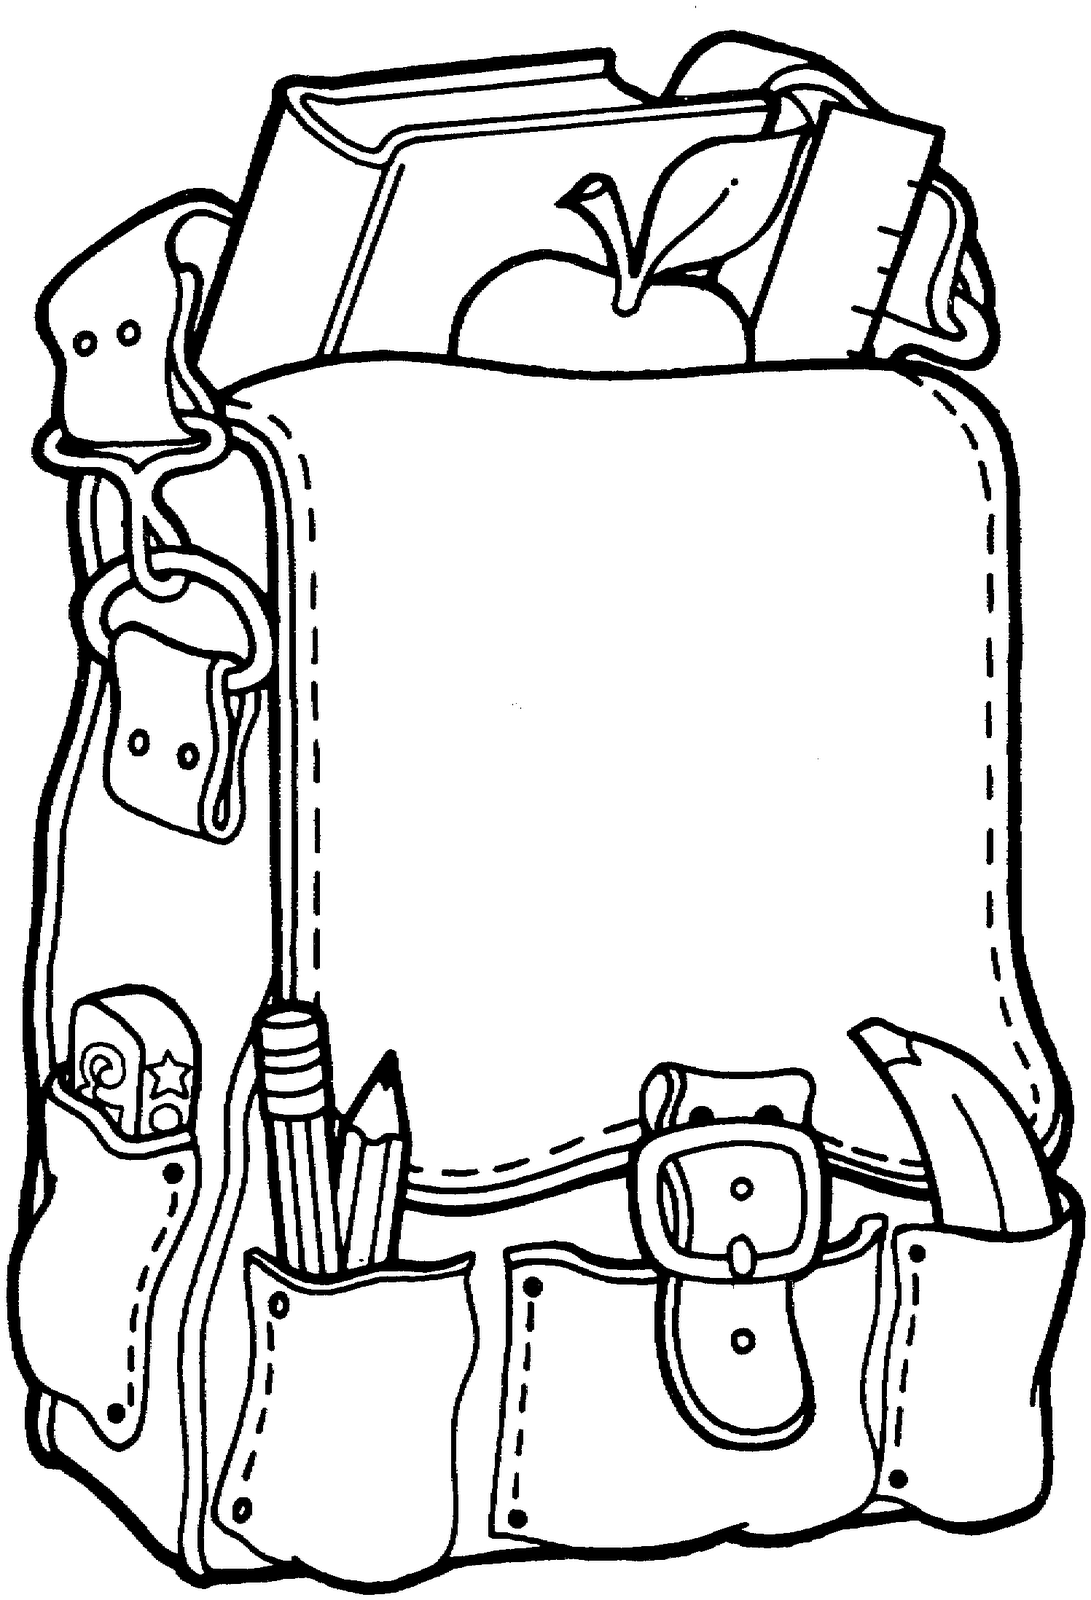 My School Bag Kindergarten Coloring Pages Kindergarten Colors School Coloring Pages